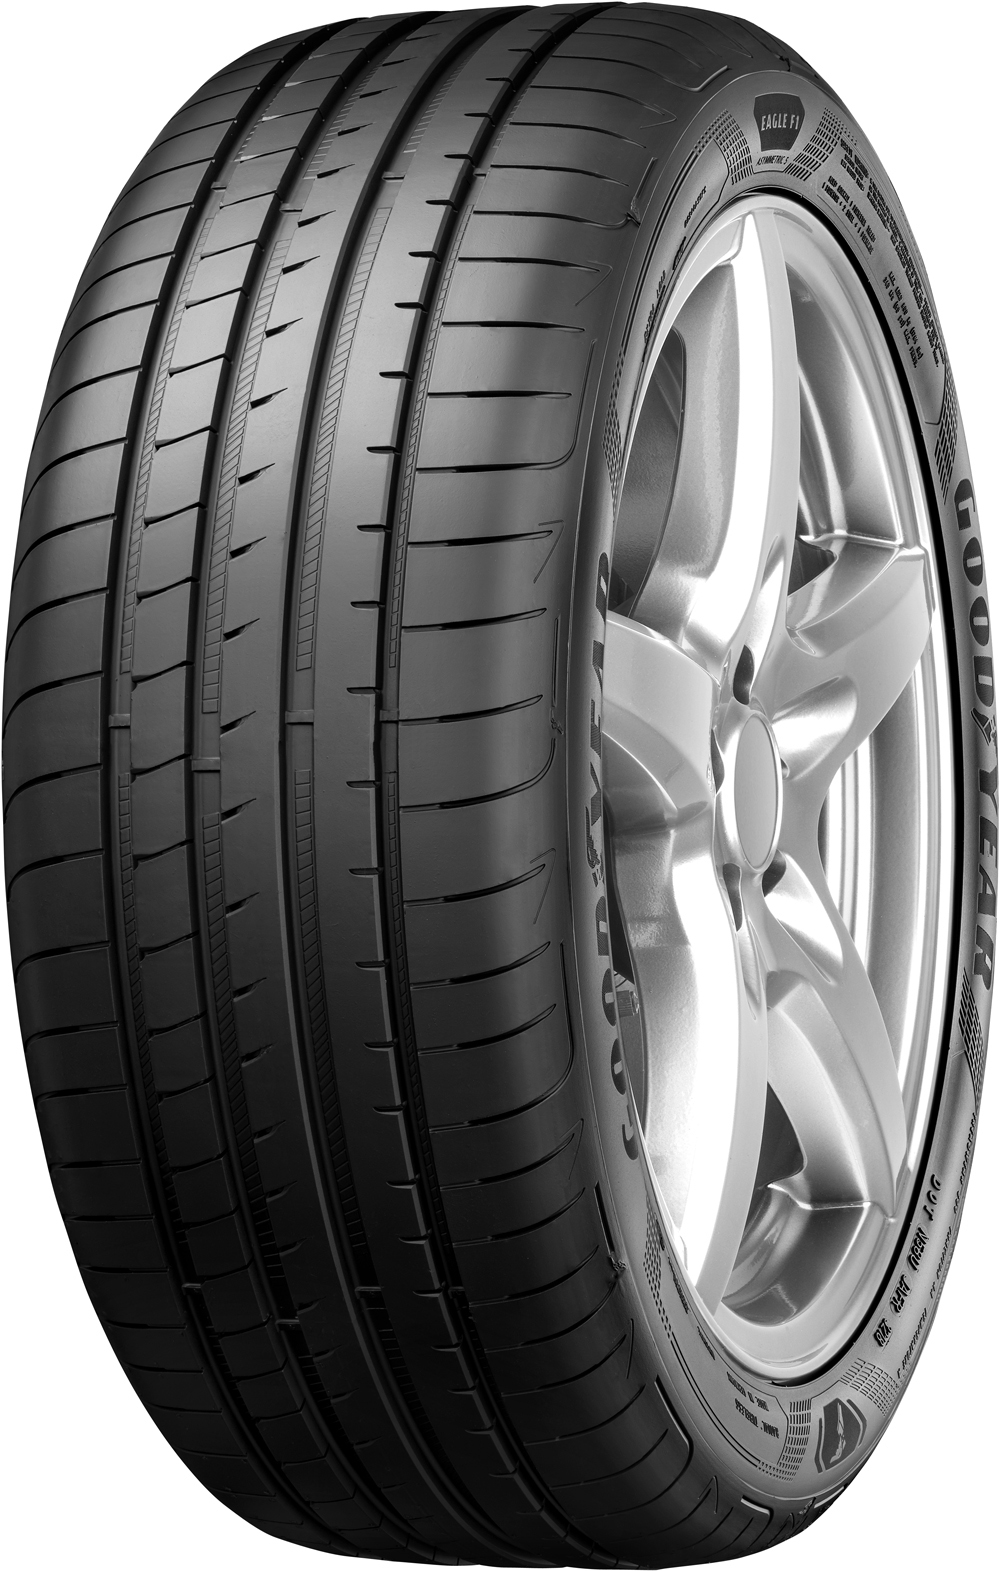 GOODYEAR EAGLE F1 ASYMM 5